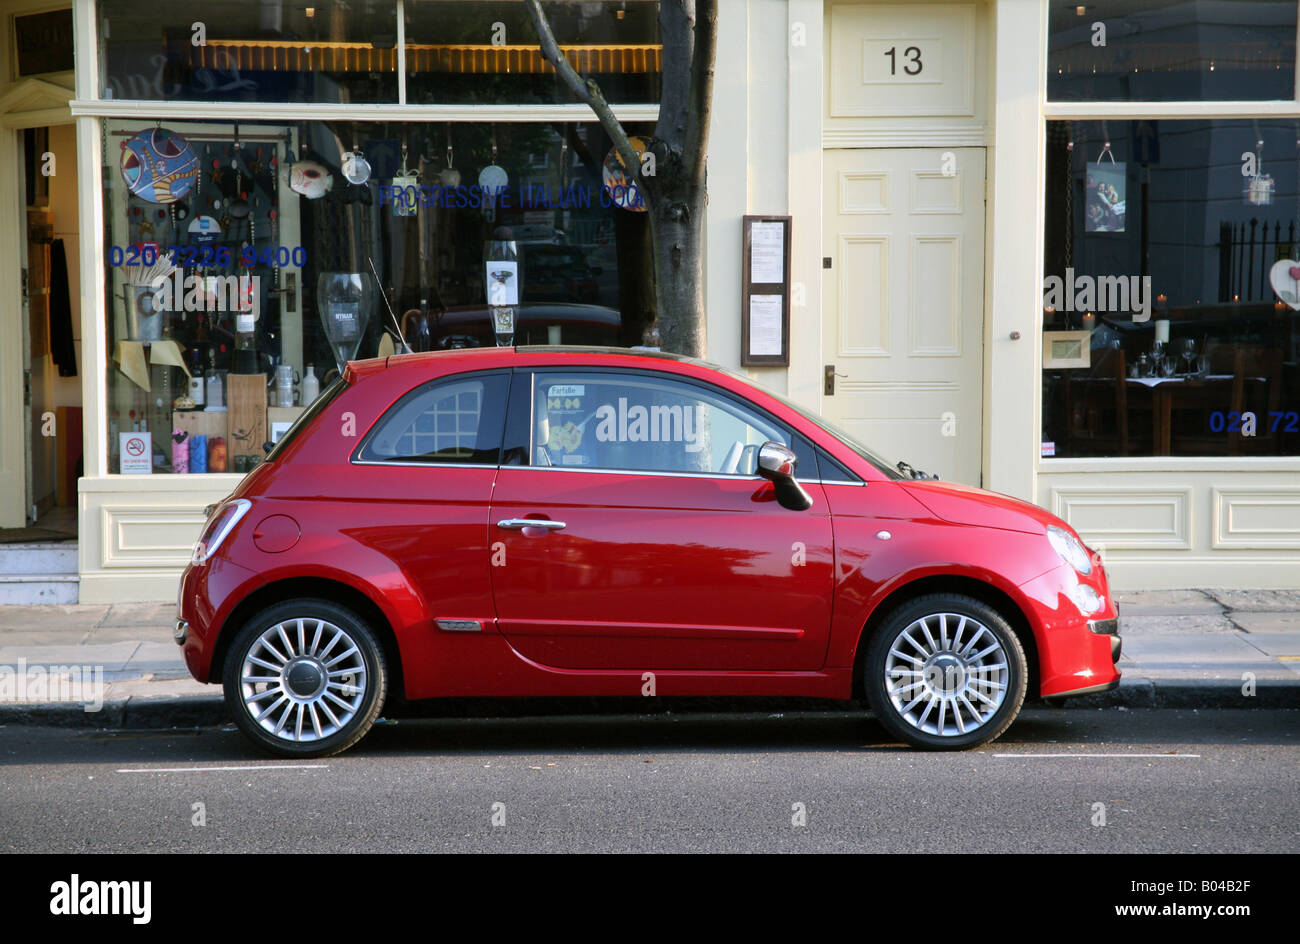 photo bridge fiat england stock london at pizza oven converted in